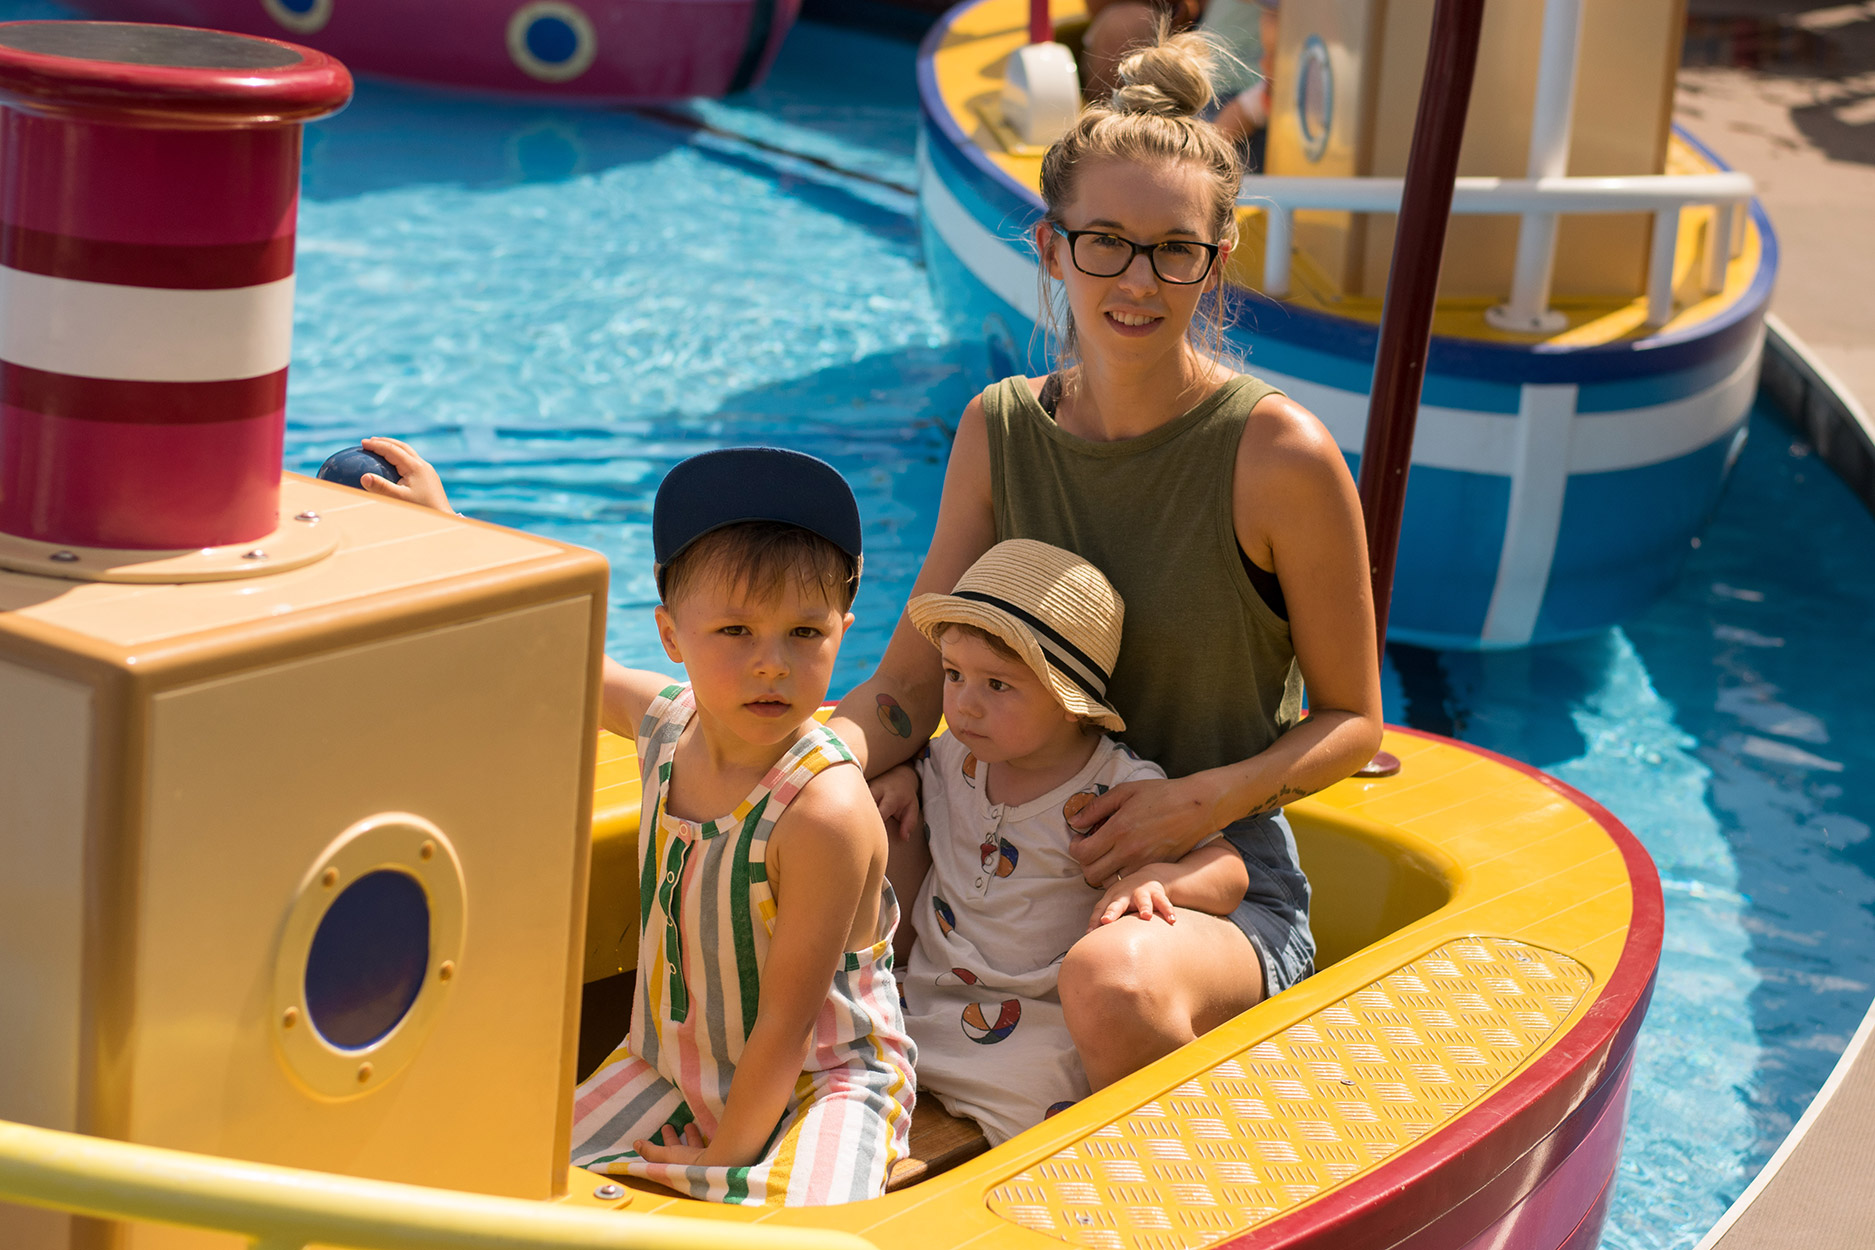 Grandpa Pig's Boat Trip - A family day out to Peppa Pig World and the Lost Kingdom at Paultons Park, Hampshire